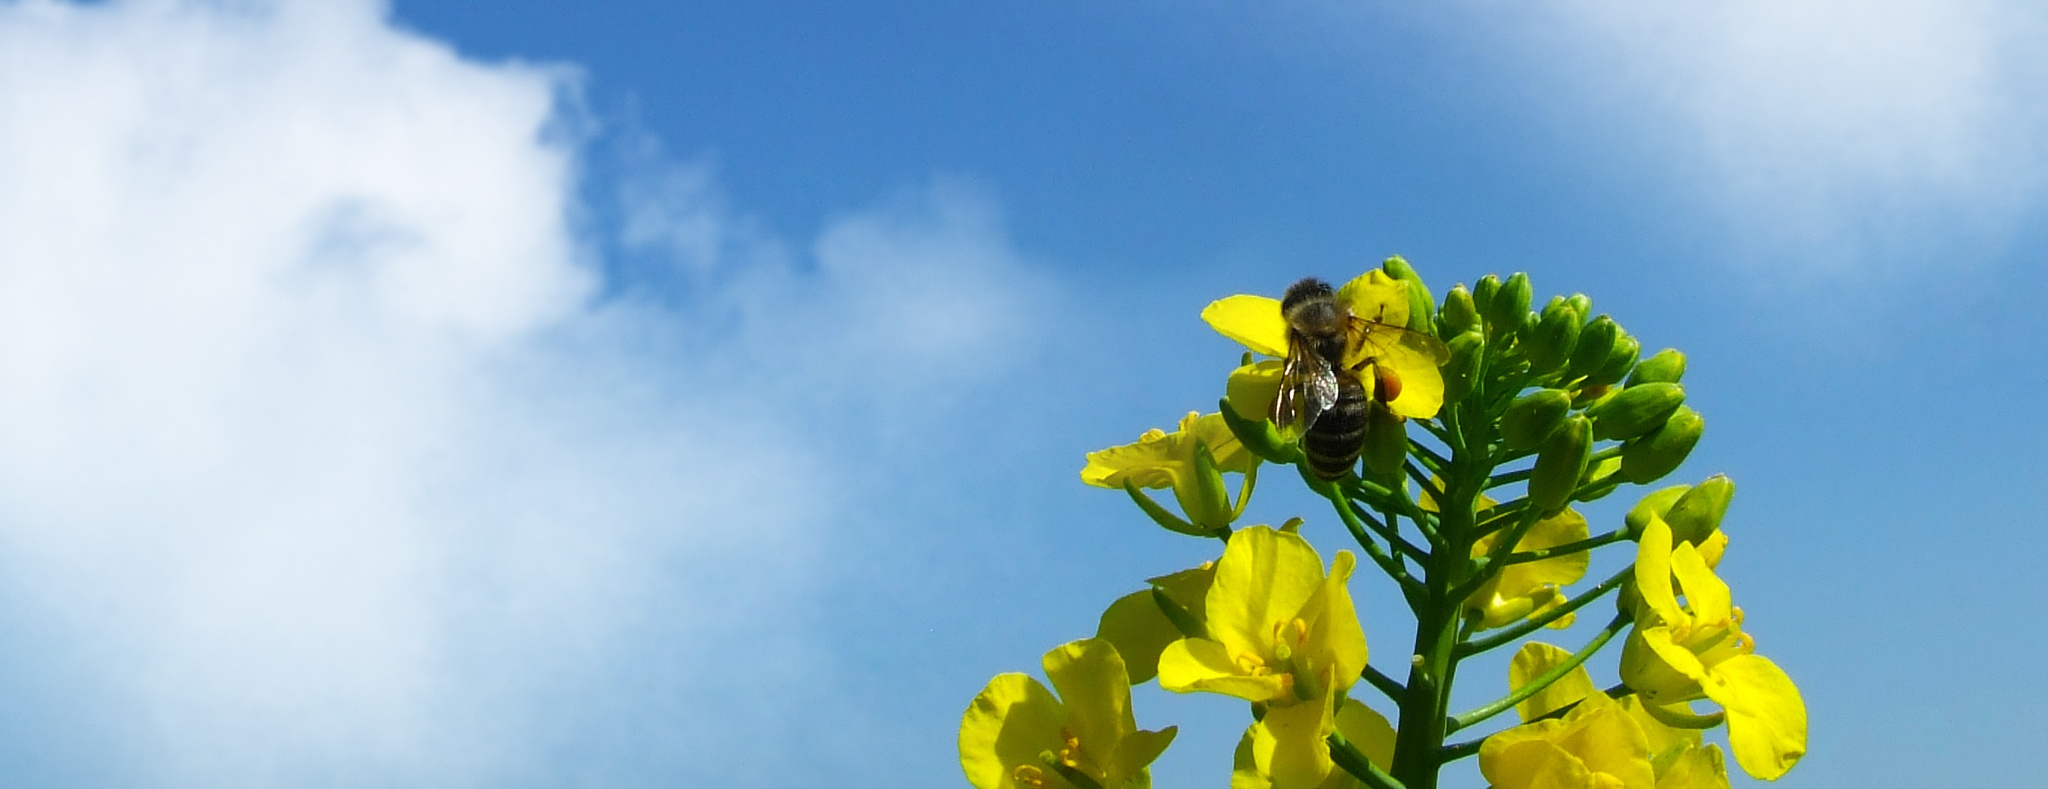 Bee and flower by Josip Kos